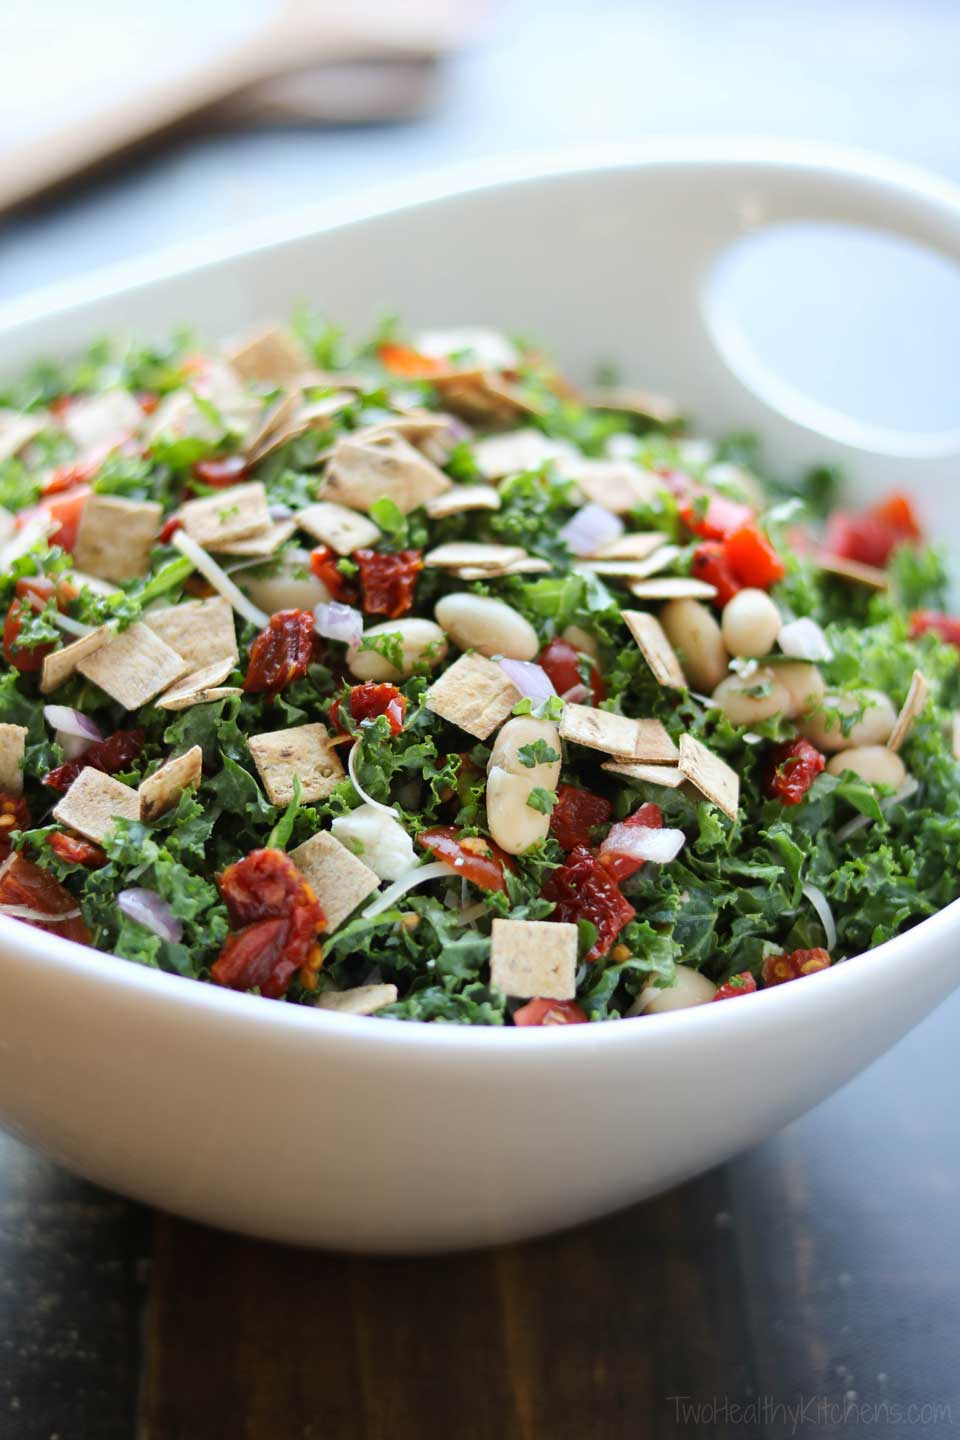 Our scrumptious Tuscan Kale Salad has so many flavors and textures in every bite!